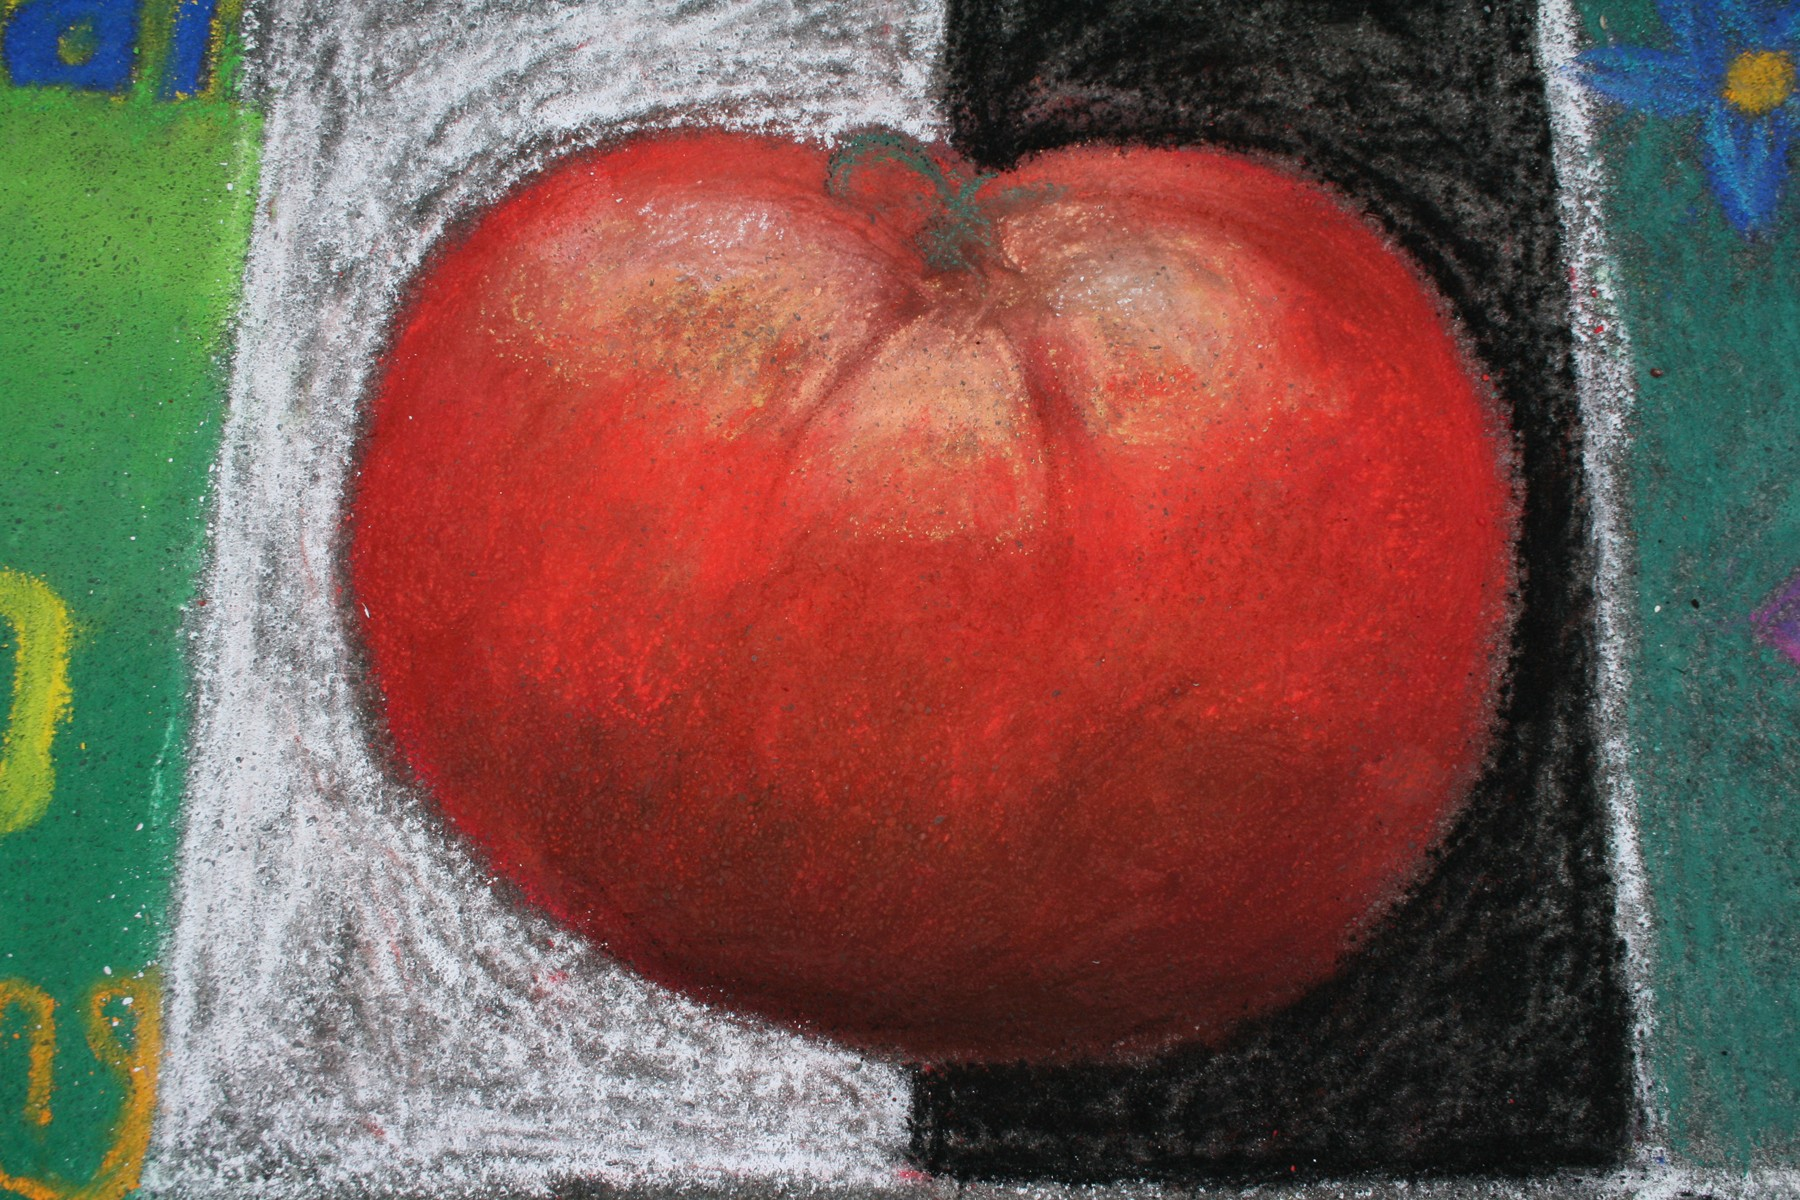 Tomato, Pastels on the Plaza 2010 - CHALK DRAWING BY AMY DORAN